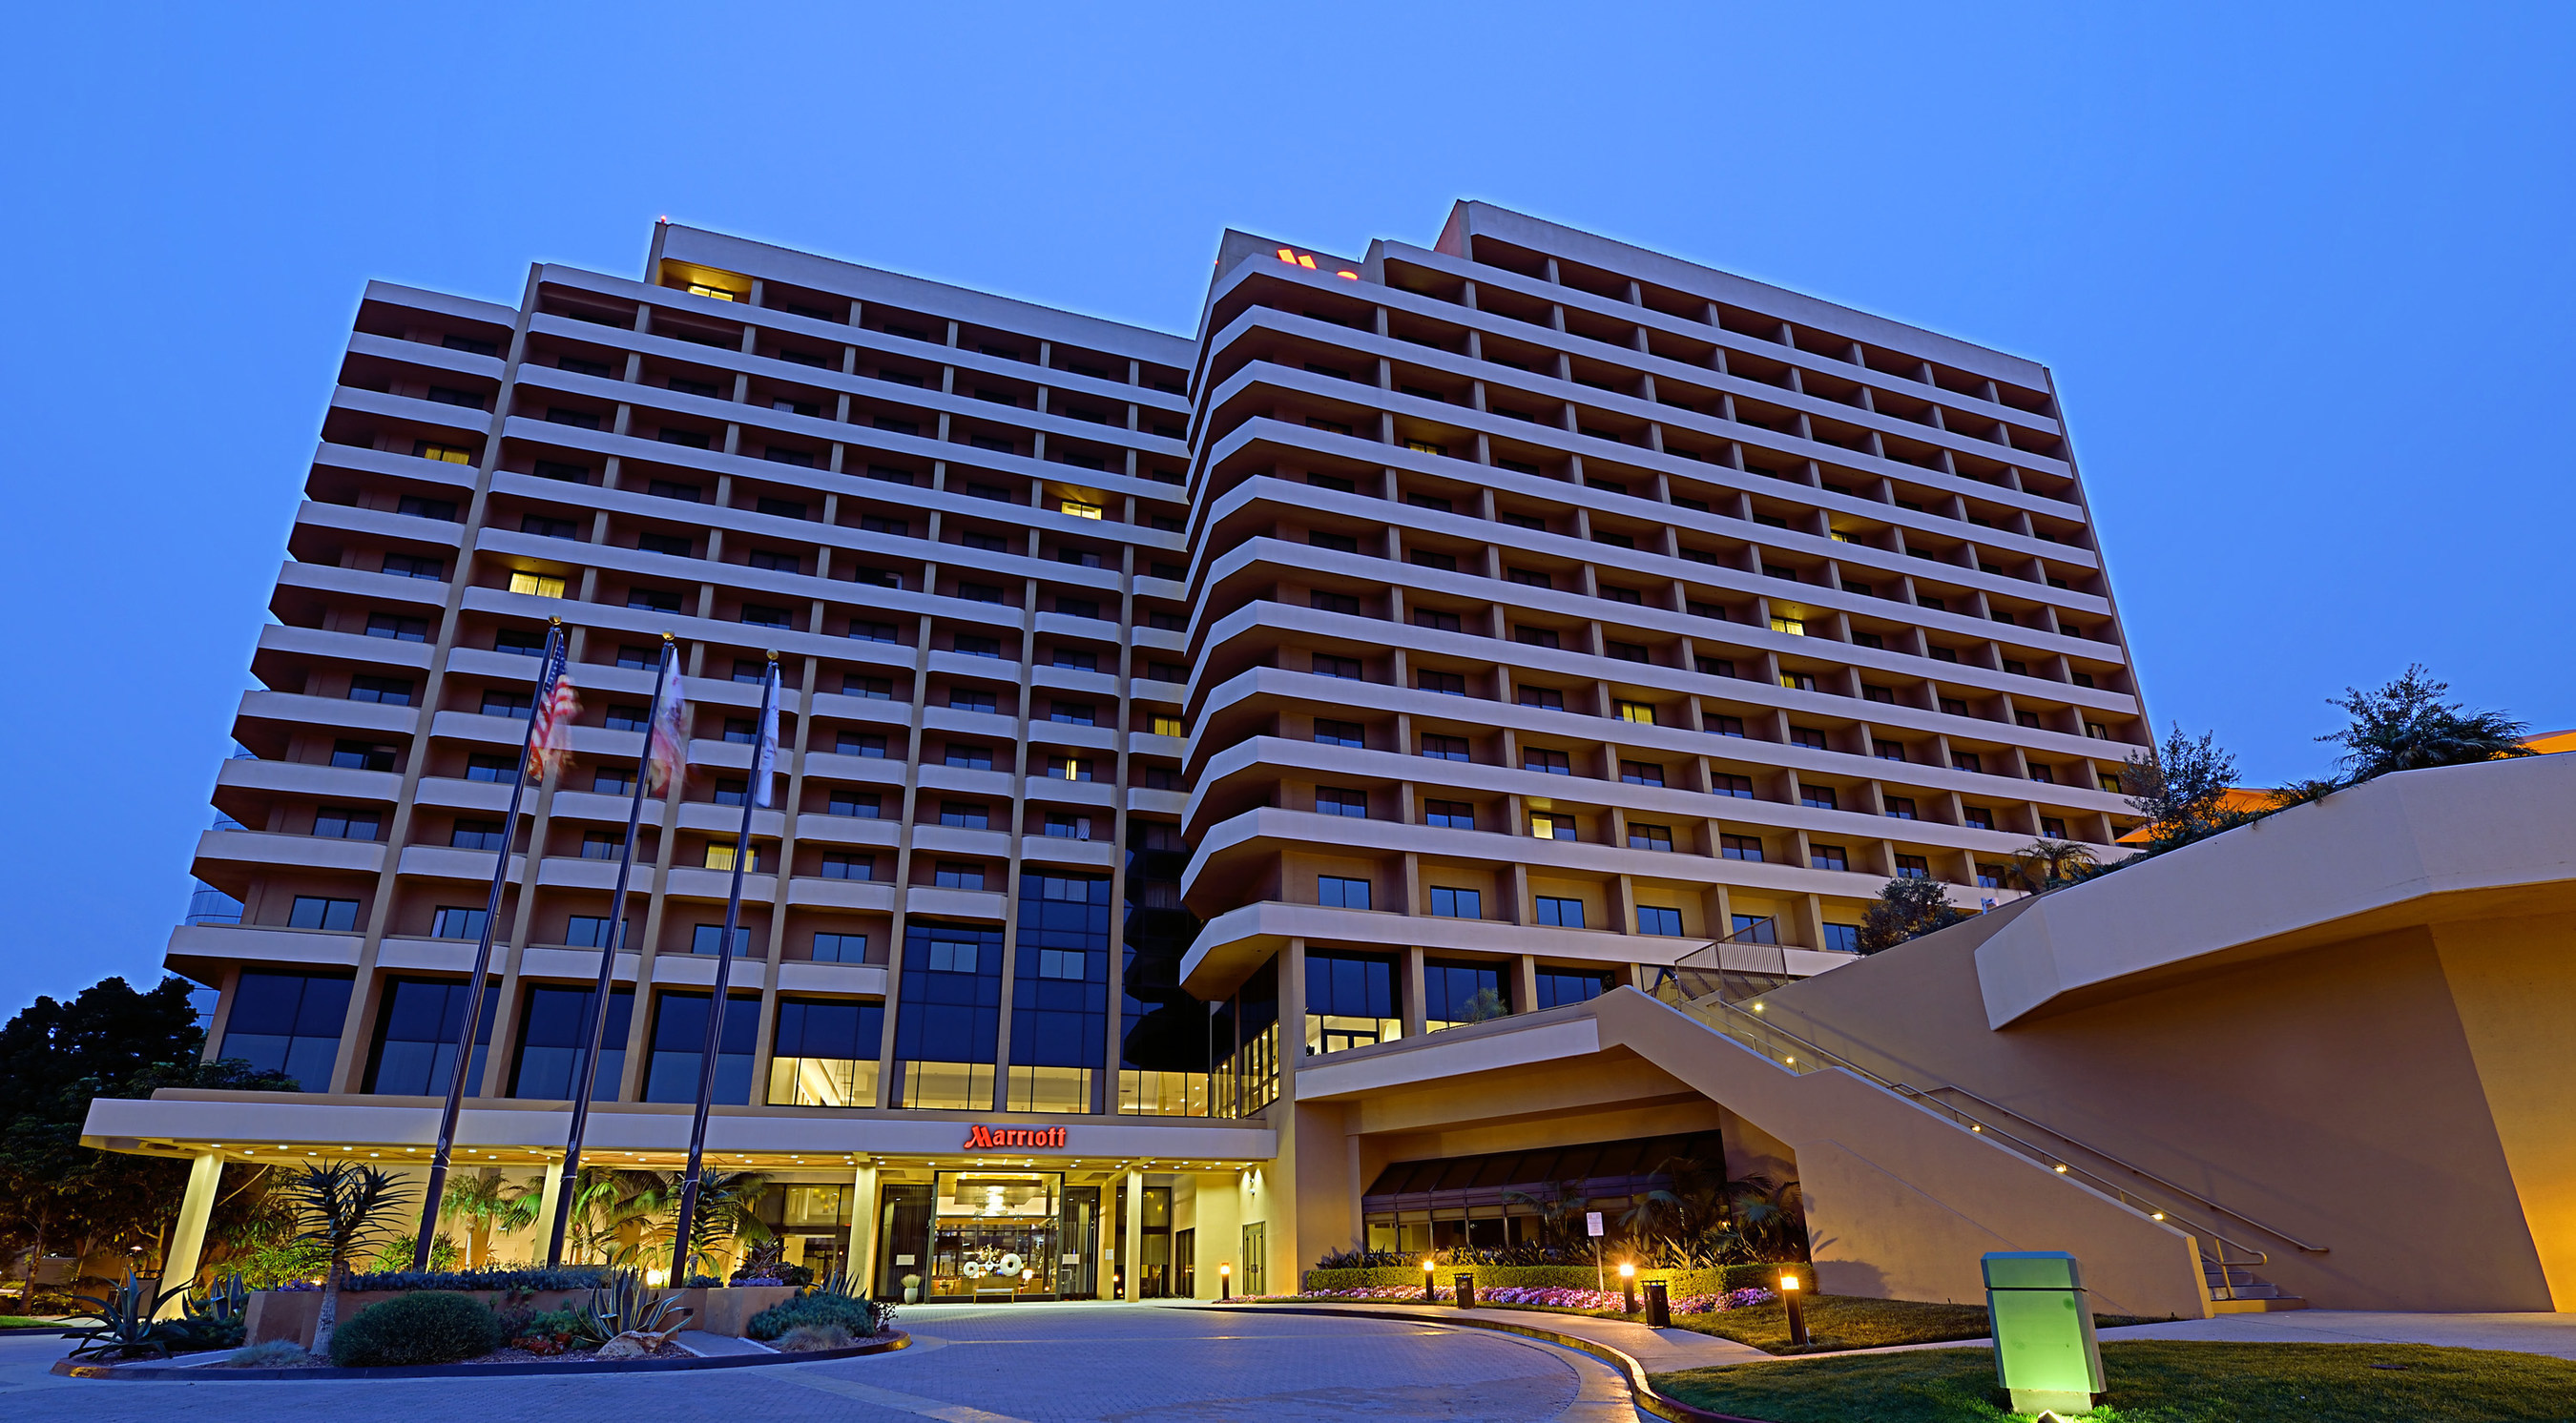 Carey Watermark 2 Acquires San Diego Marriott La Jolla